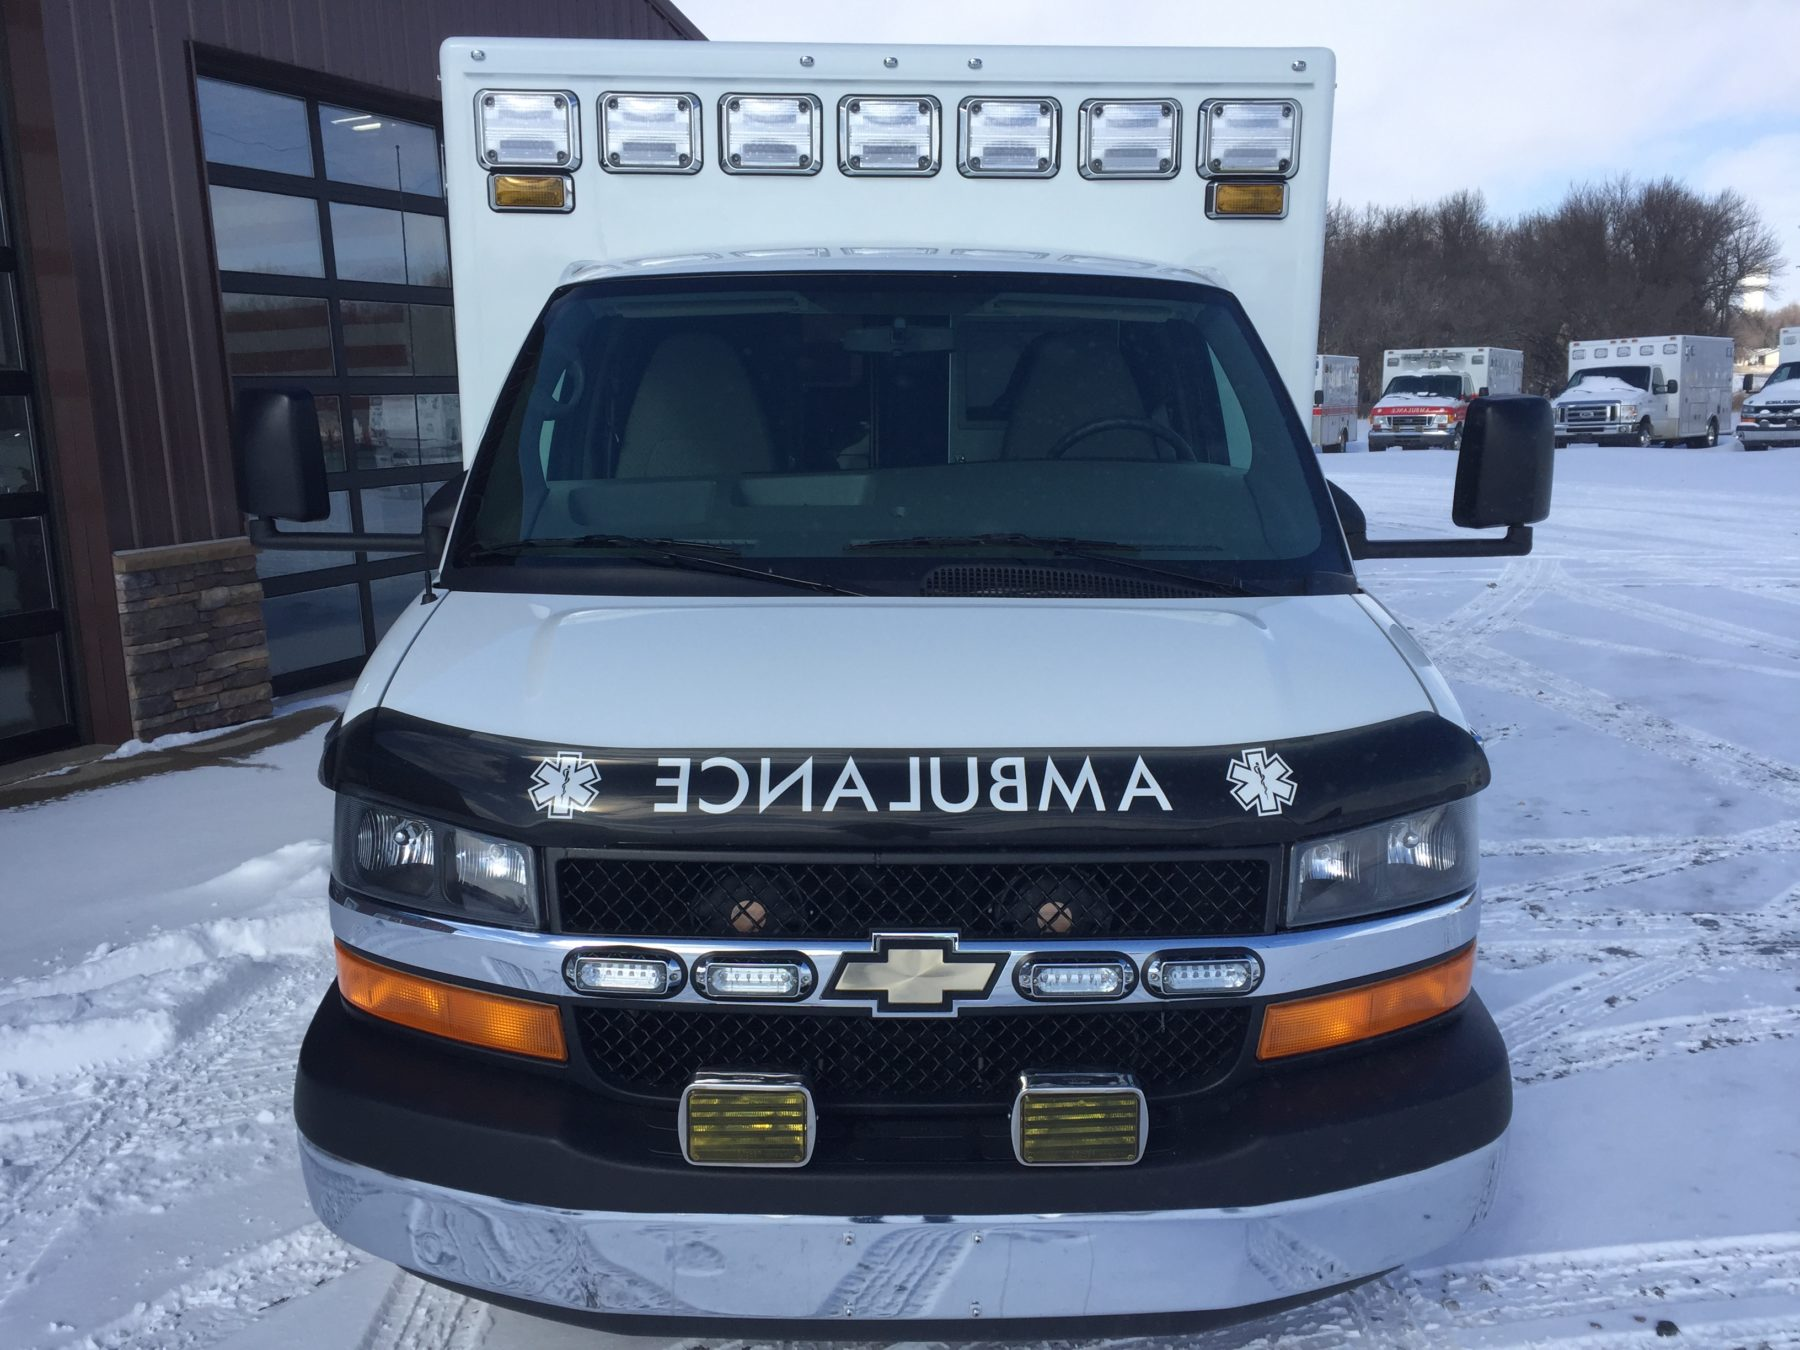 2010 Chevrolet G4500 Type 3 Ambulance For Sale – Picture 7